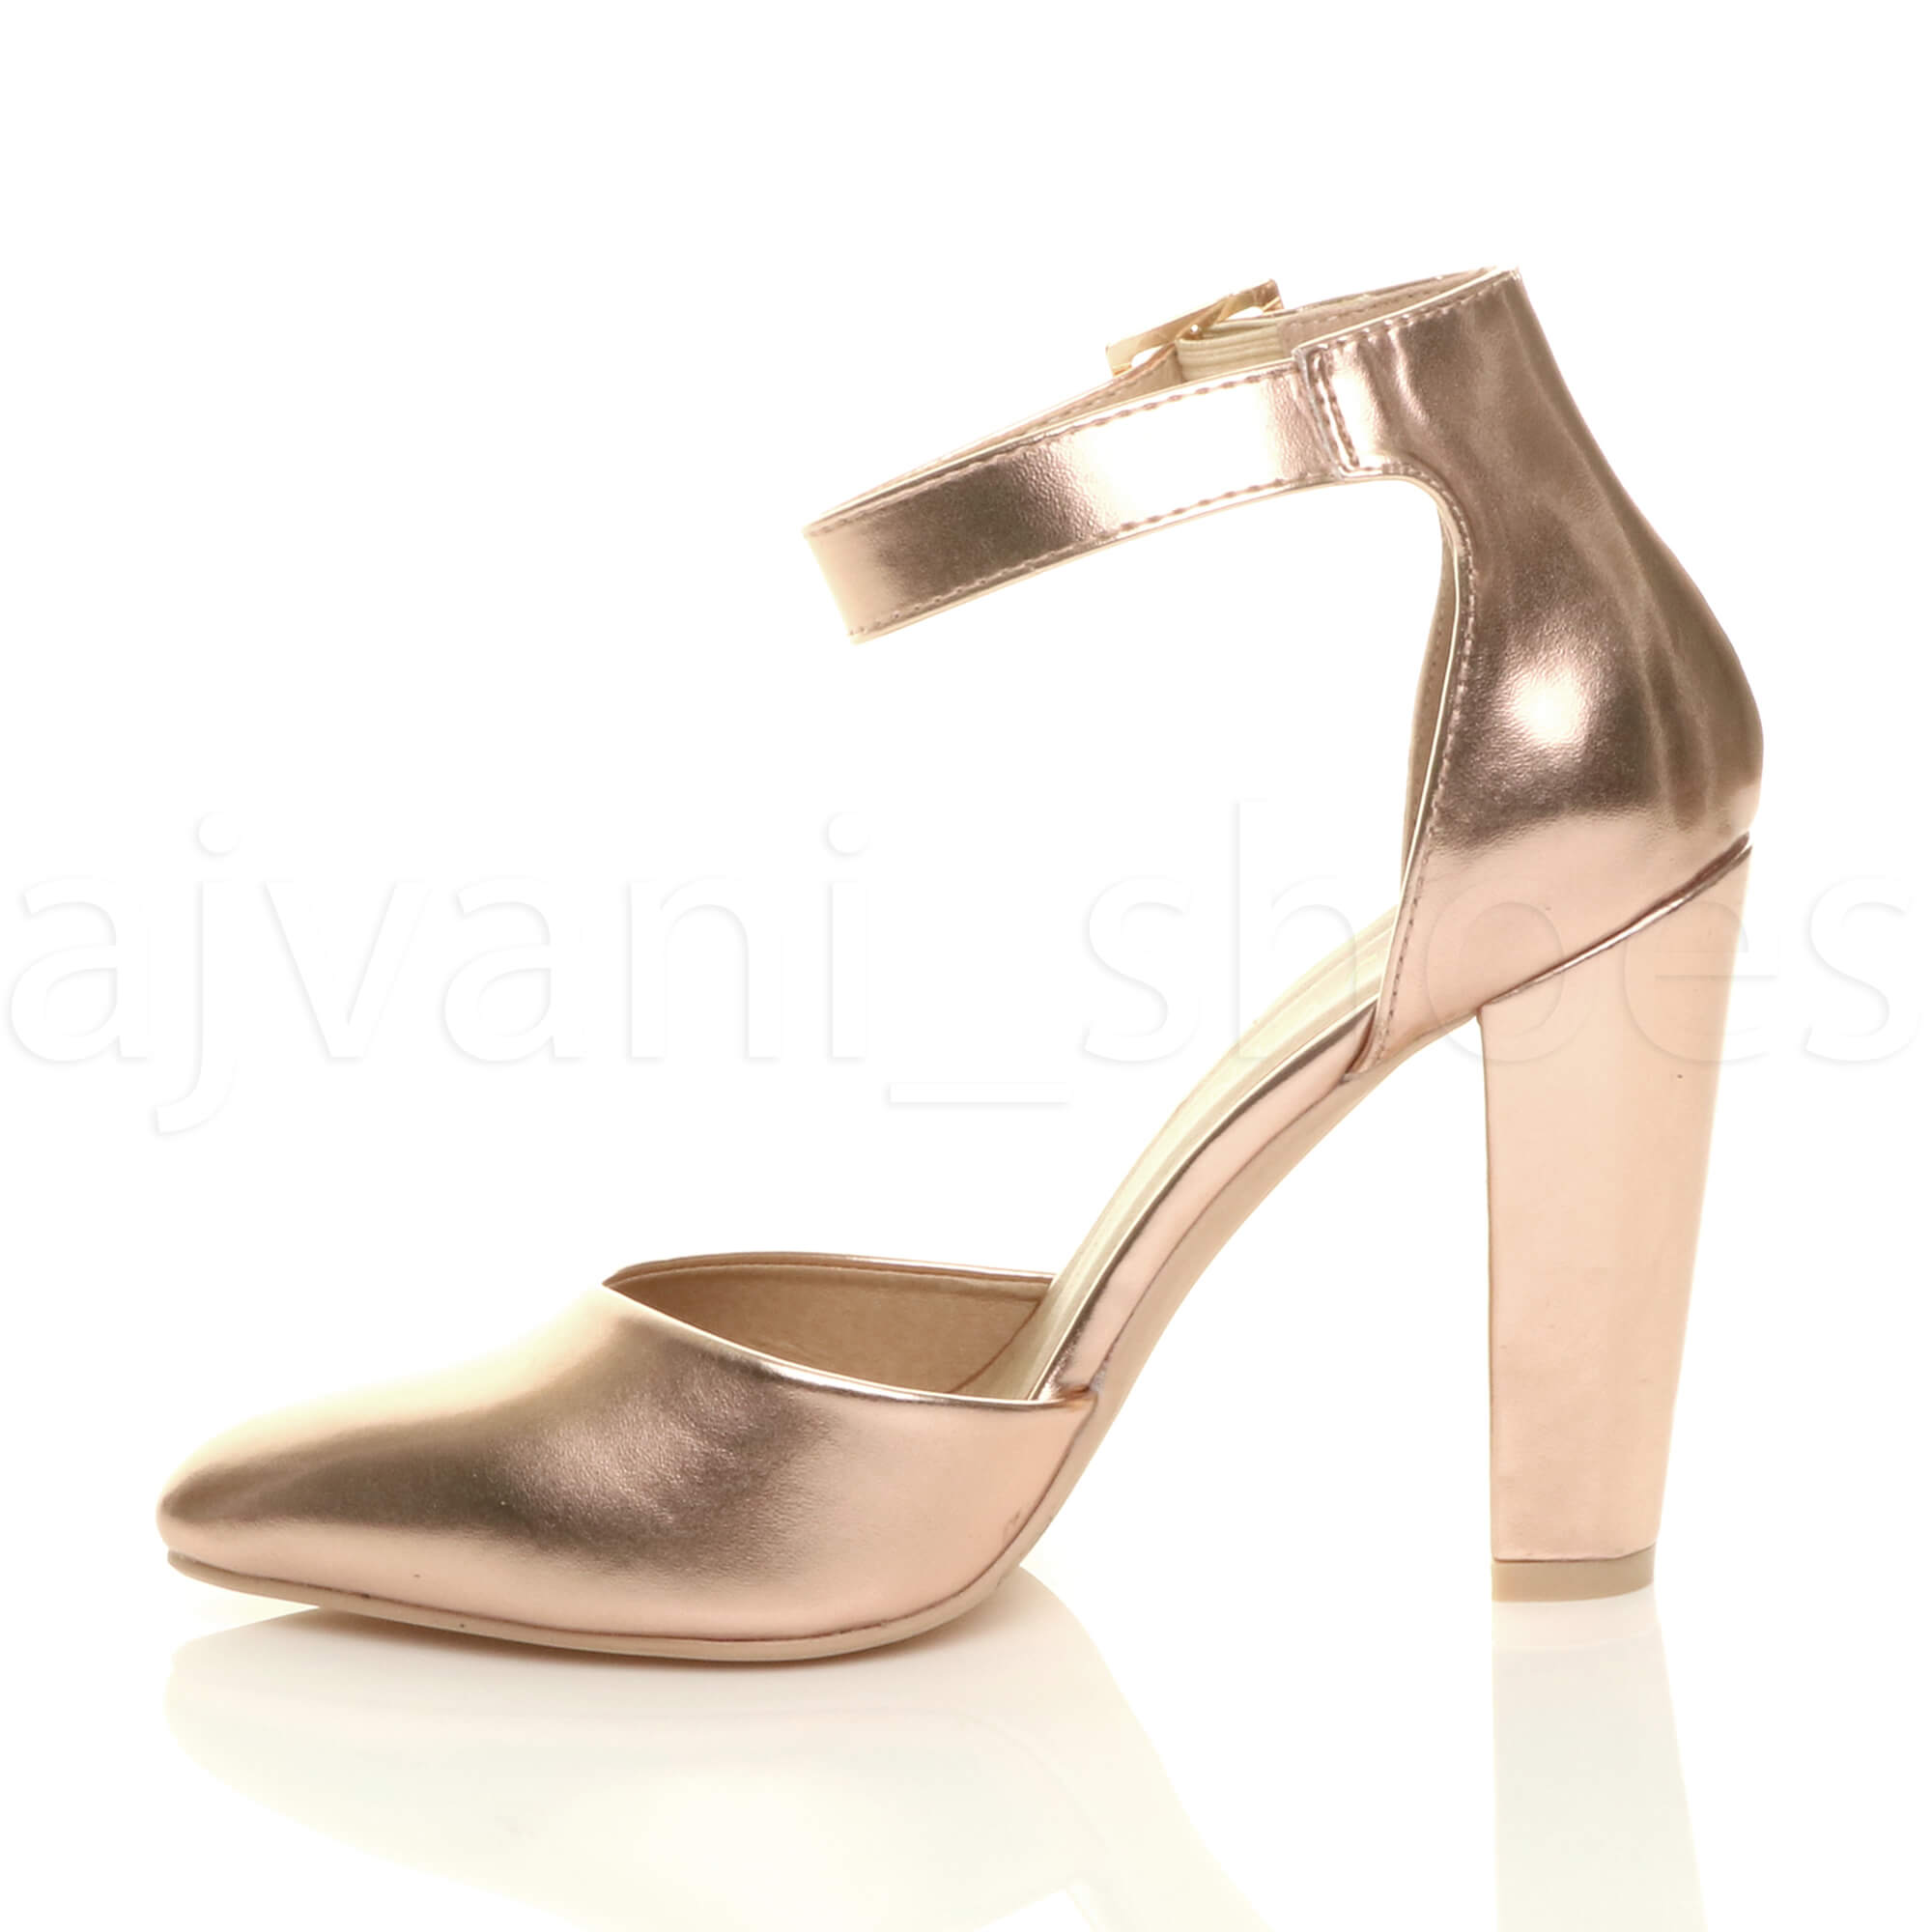 WOMENS-LADIES-HIGH-BLOCK-HEEL-ANKLE-STRAP-BUCKLE-POINTED-COURT-SHOES-SIZE thumbnail 144